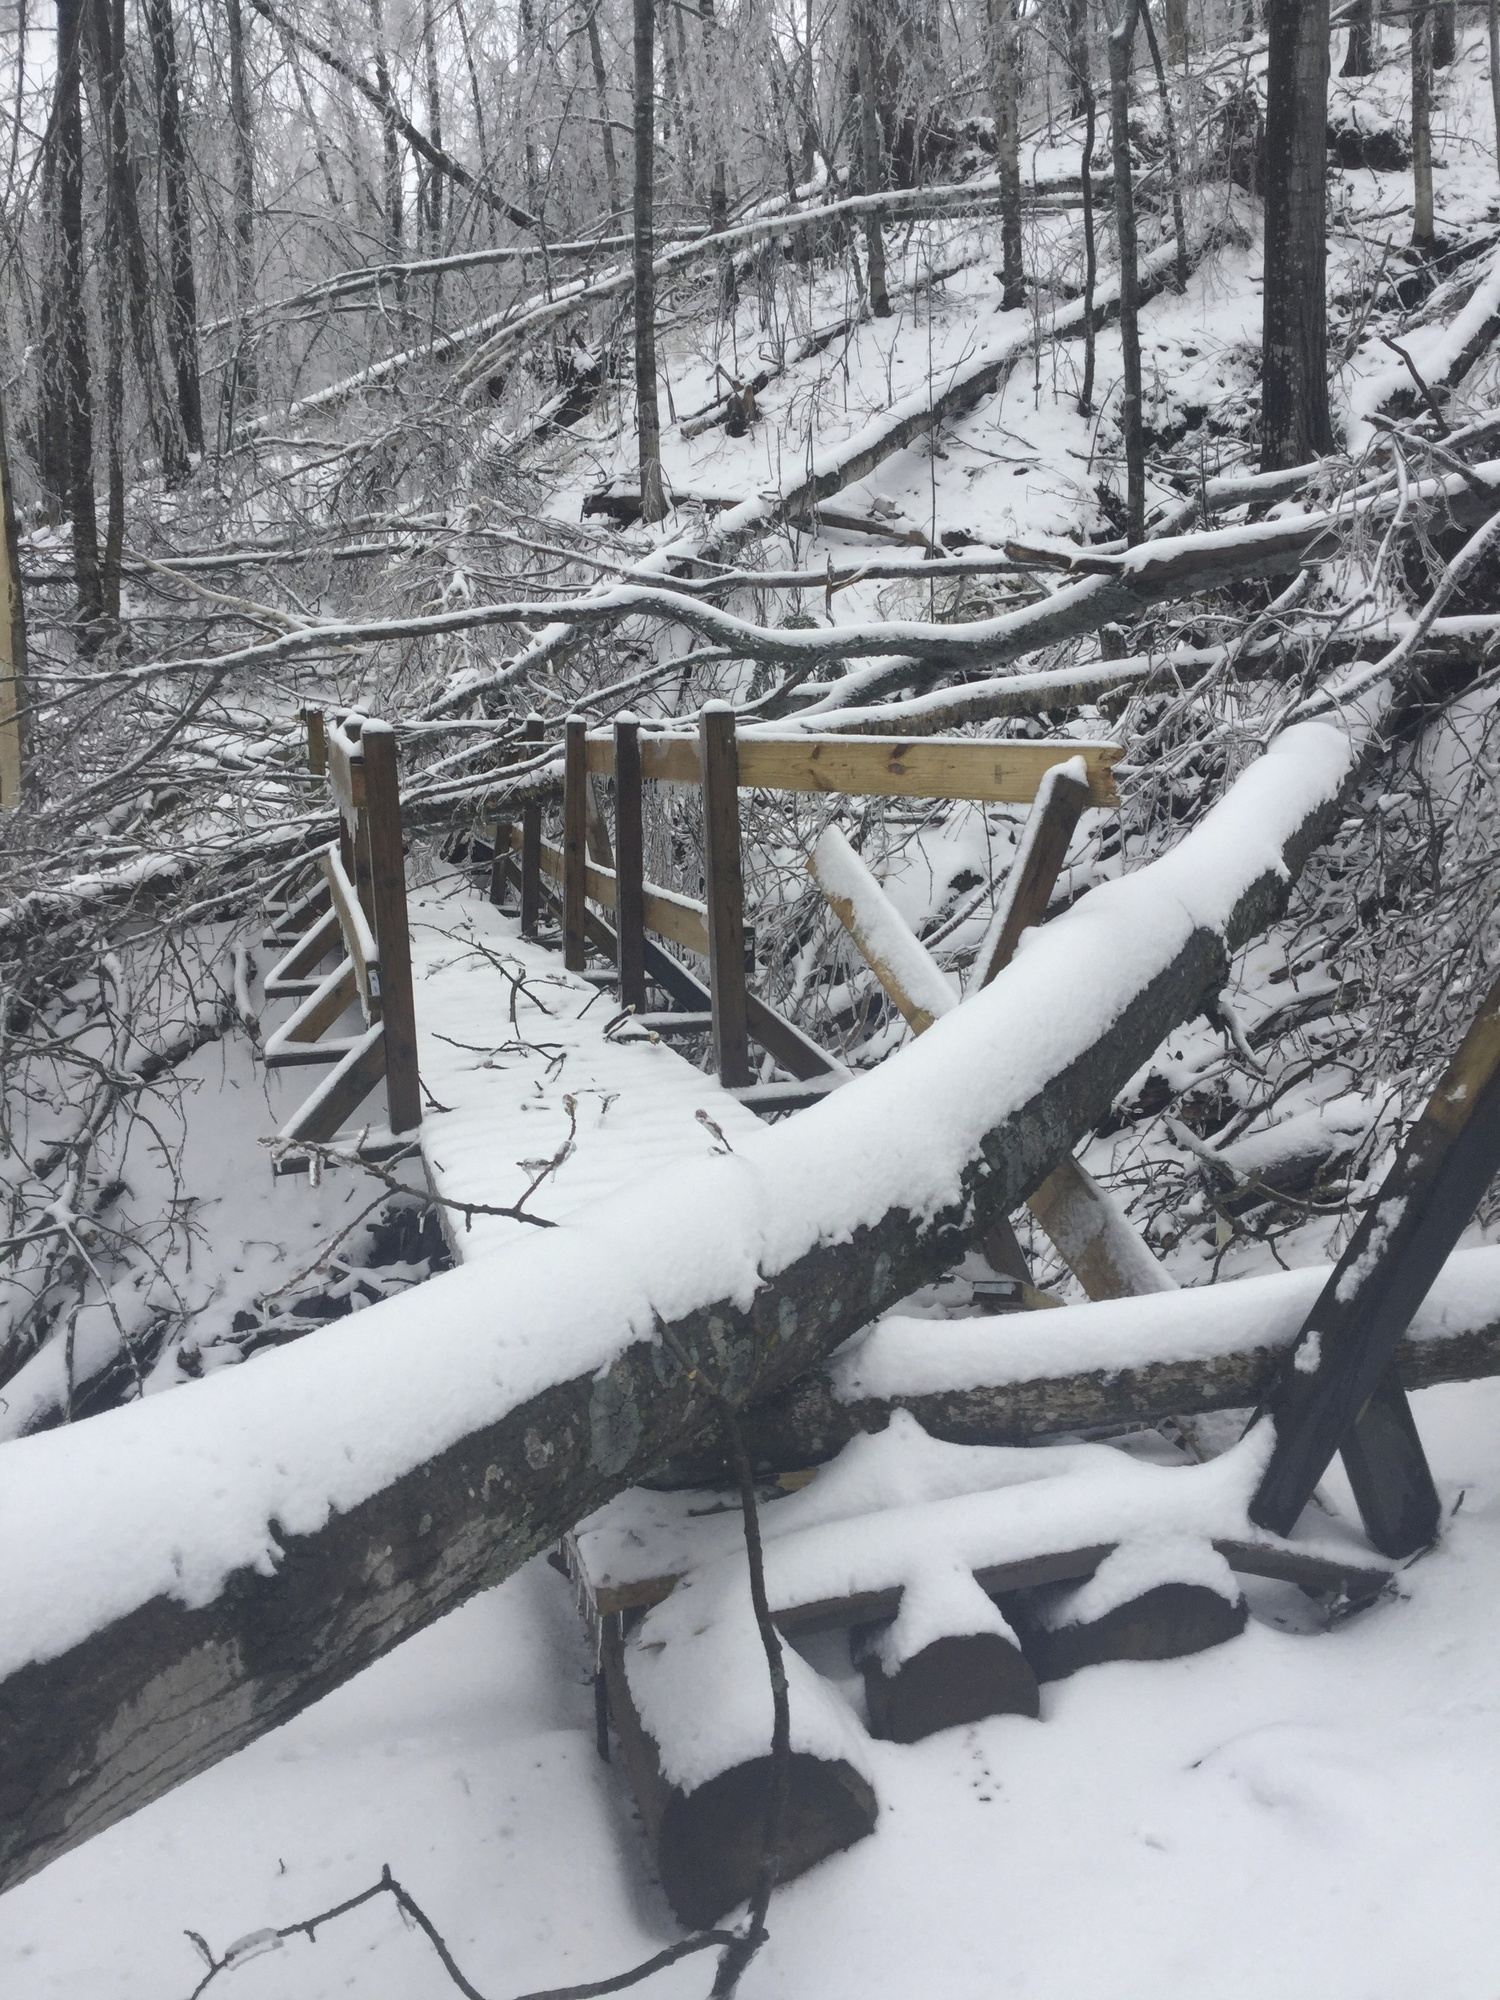 A bridge damaged by fallen trees at Porcupine Mountains Wilderness State Park is shown.